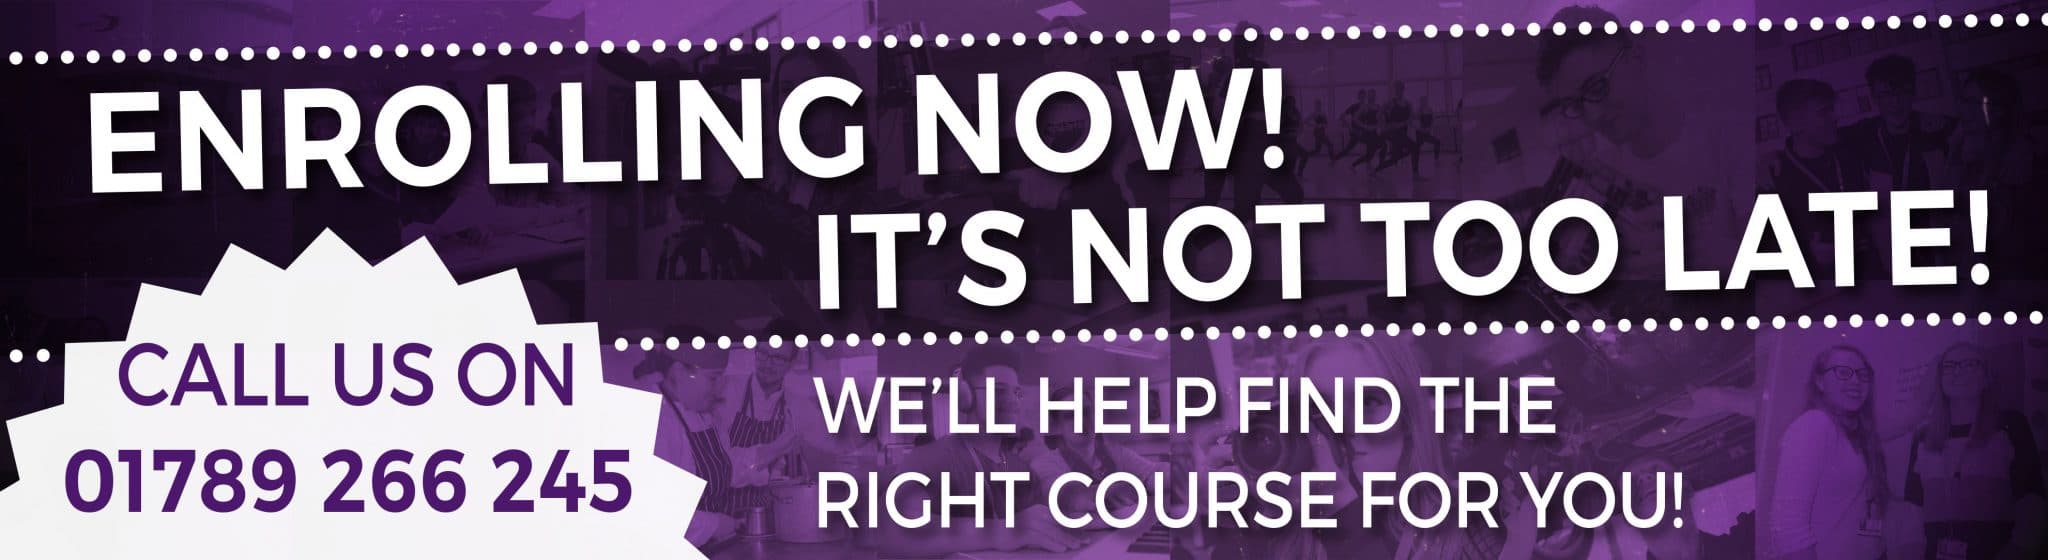 Enrolling now! It's not too late! We'll help find the right course for you! Call us on 0121 678 7000